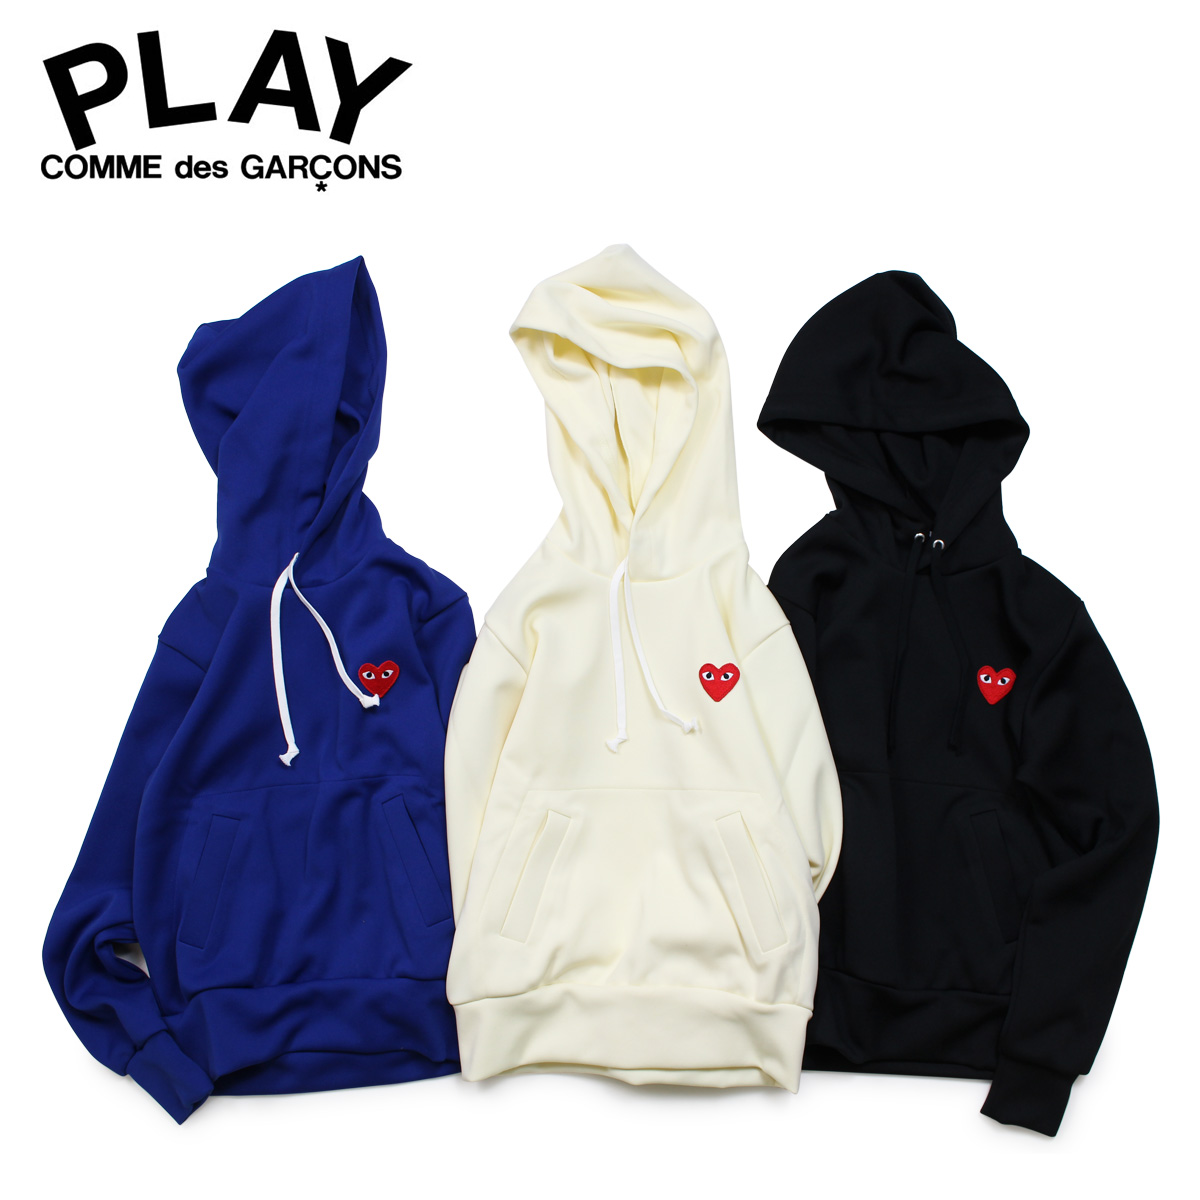 COMME des GARCONS PLAY コムデギャルソン パーカー プルオーバー スウェット レディース RED HEART PATCH ZIP HOODED SWEATSHIRT P1T173 AZ-T173